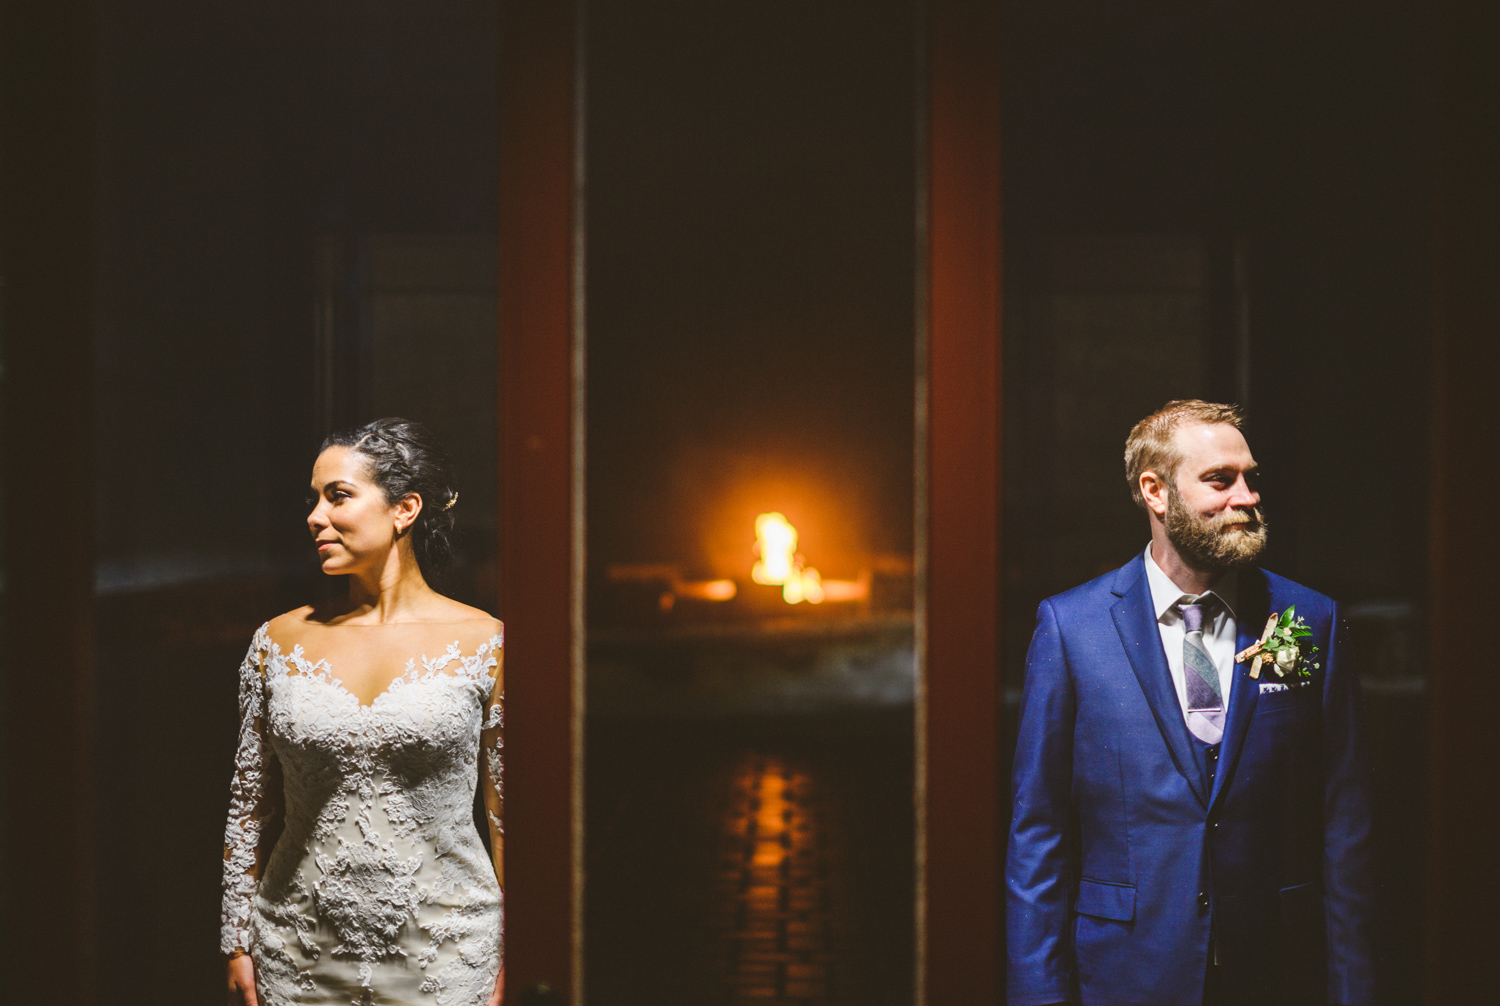 047 - portrait of bride and groom in front of bonfire.jpg